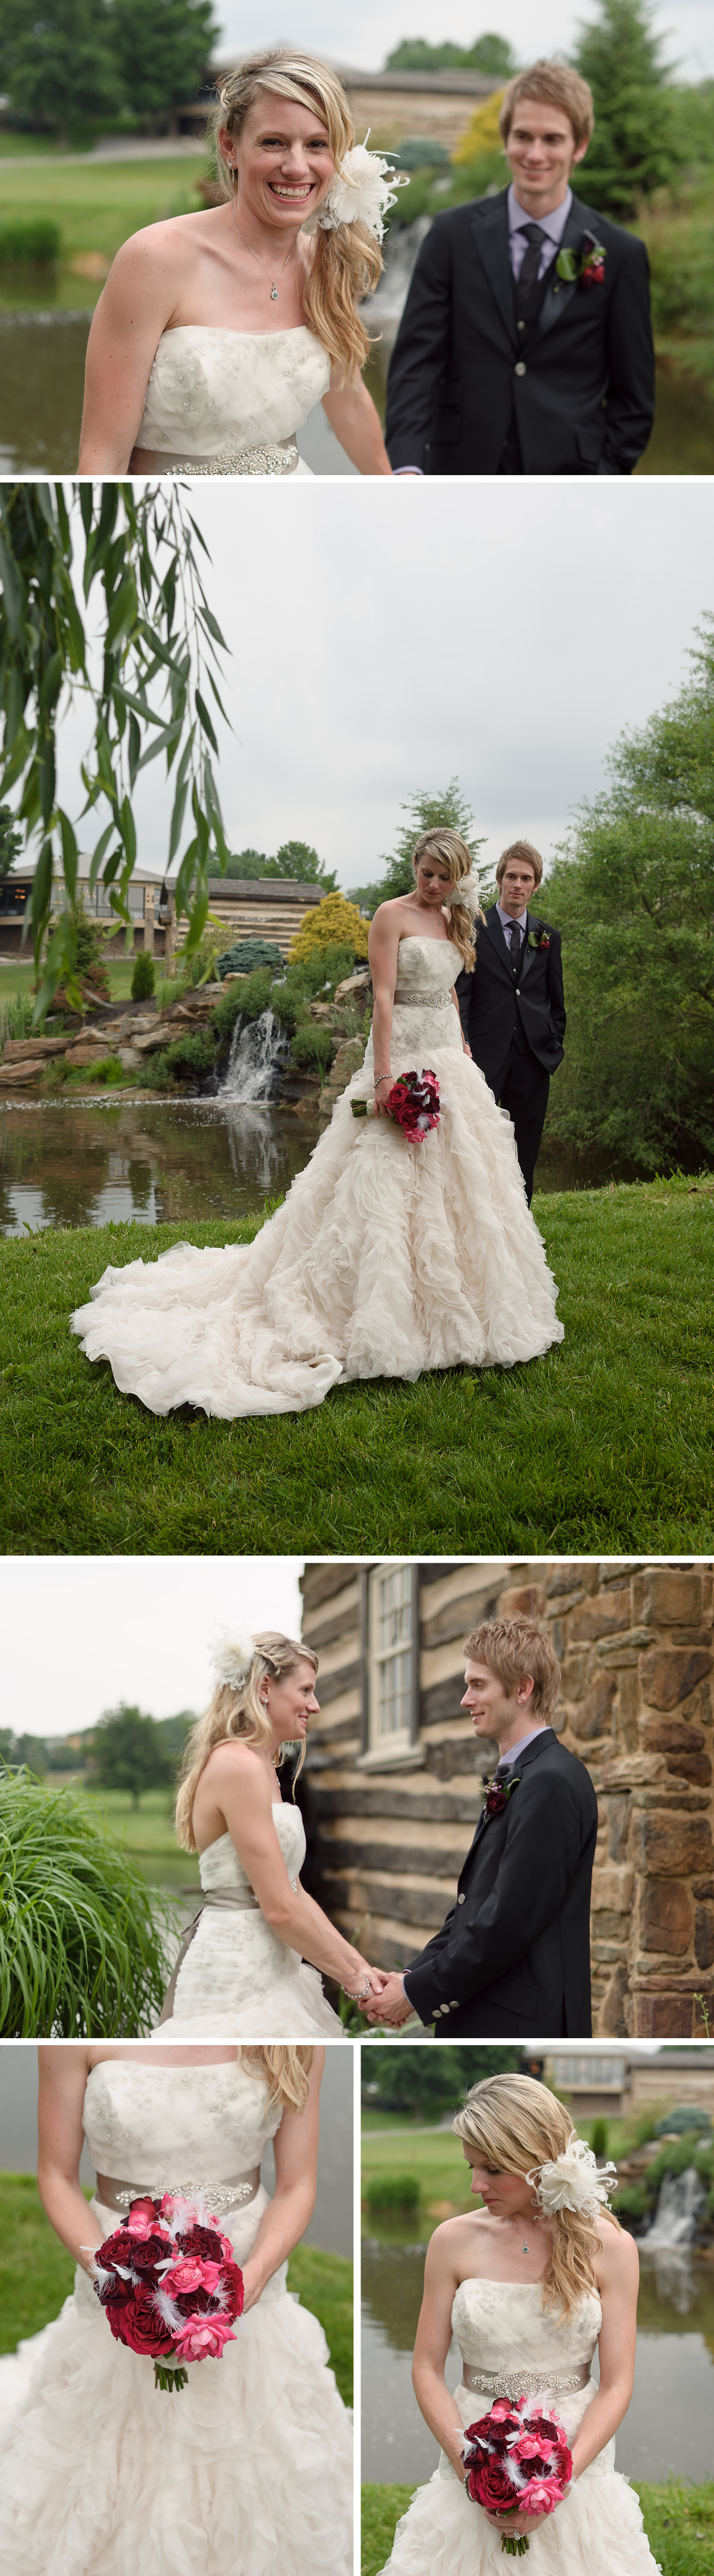 Heritage Hills York PA wedding photography by Jeremy Bischoff Photography